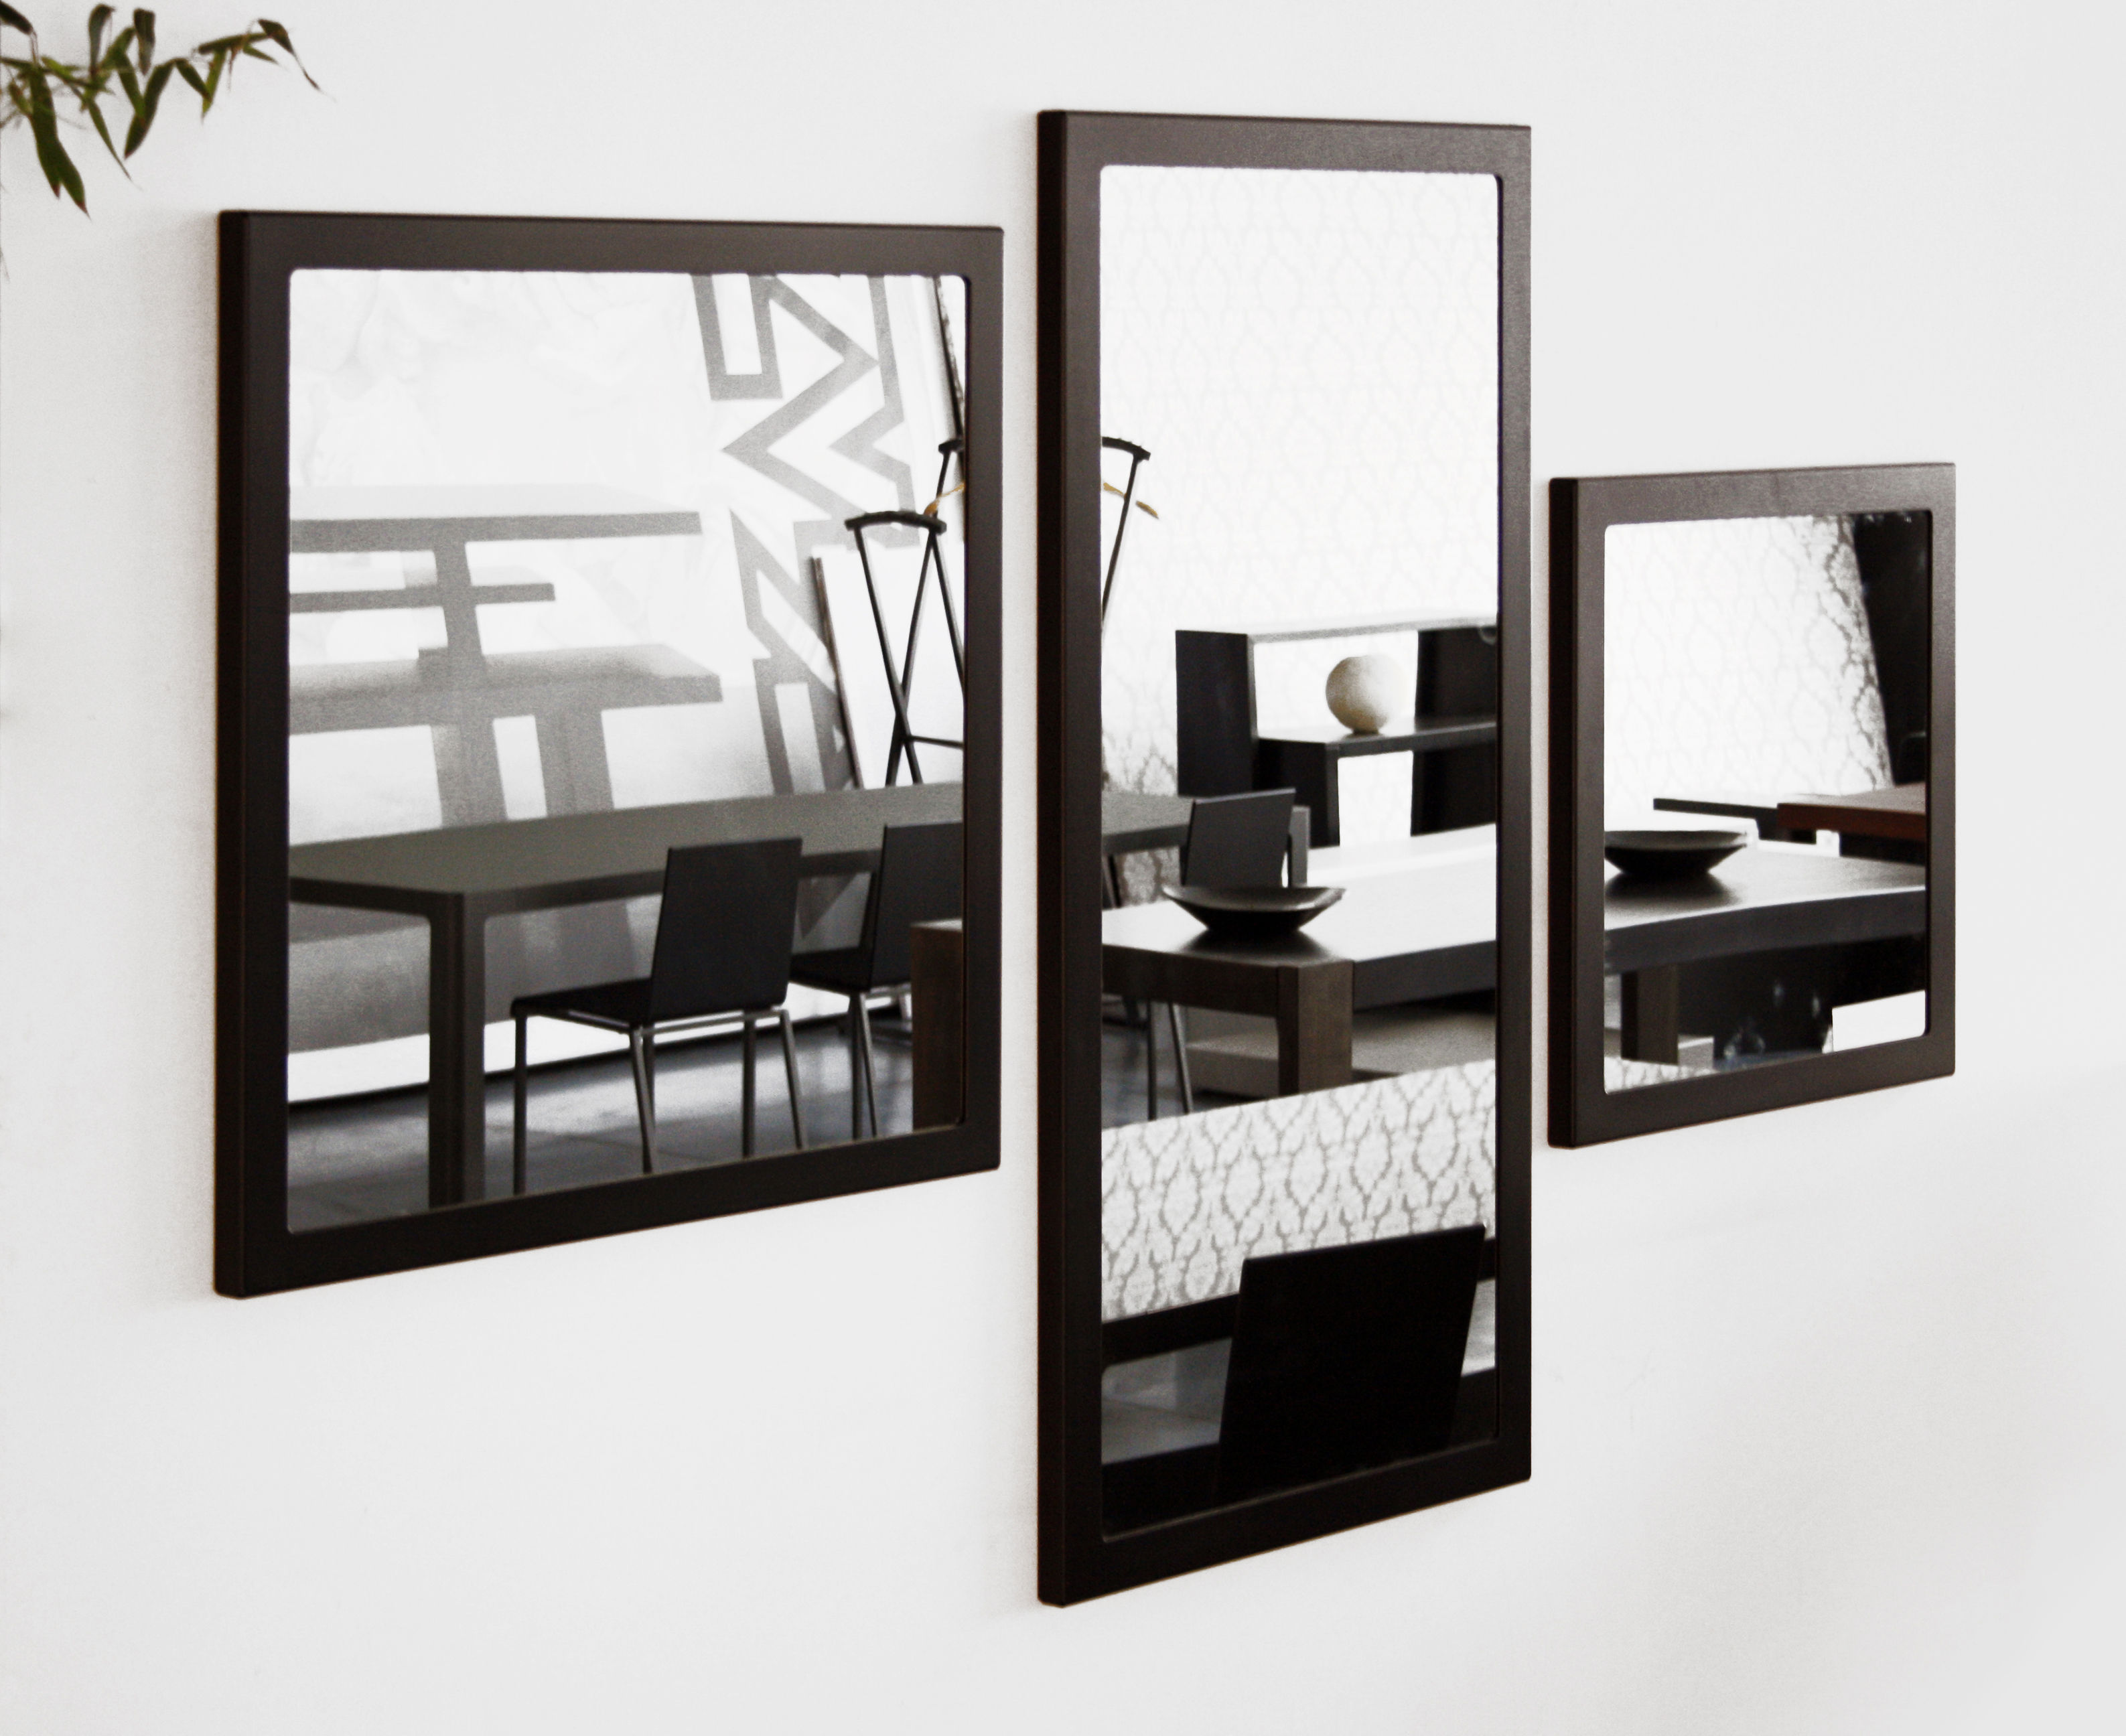 miroir mural little frame 45 x 90 cm blanc demi opaque zeus. Black Bedroom Furniture Sets. Home Design Ideas